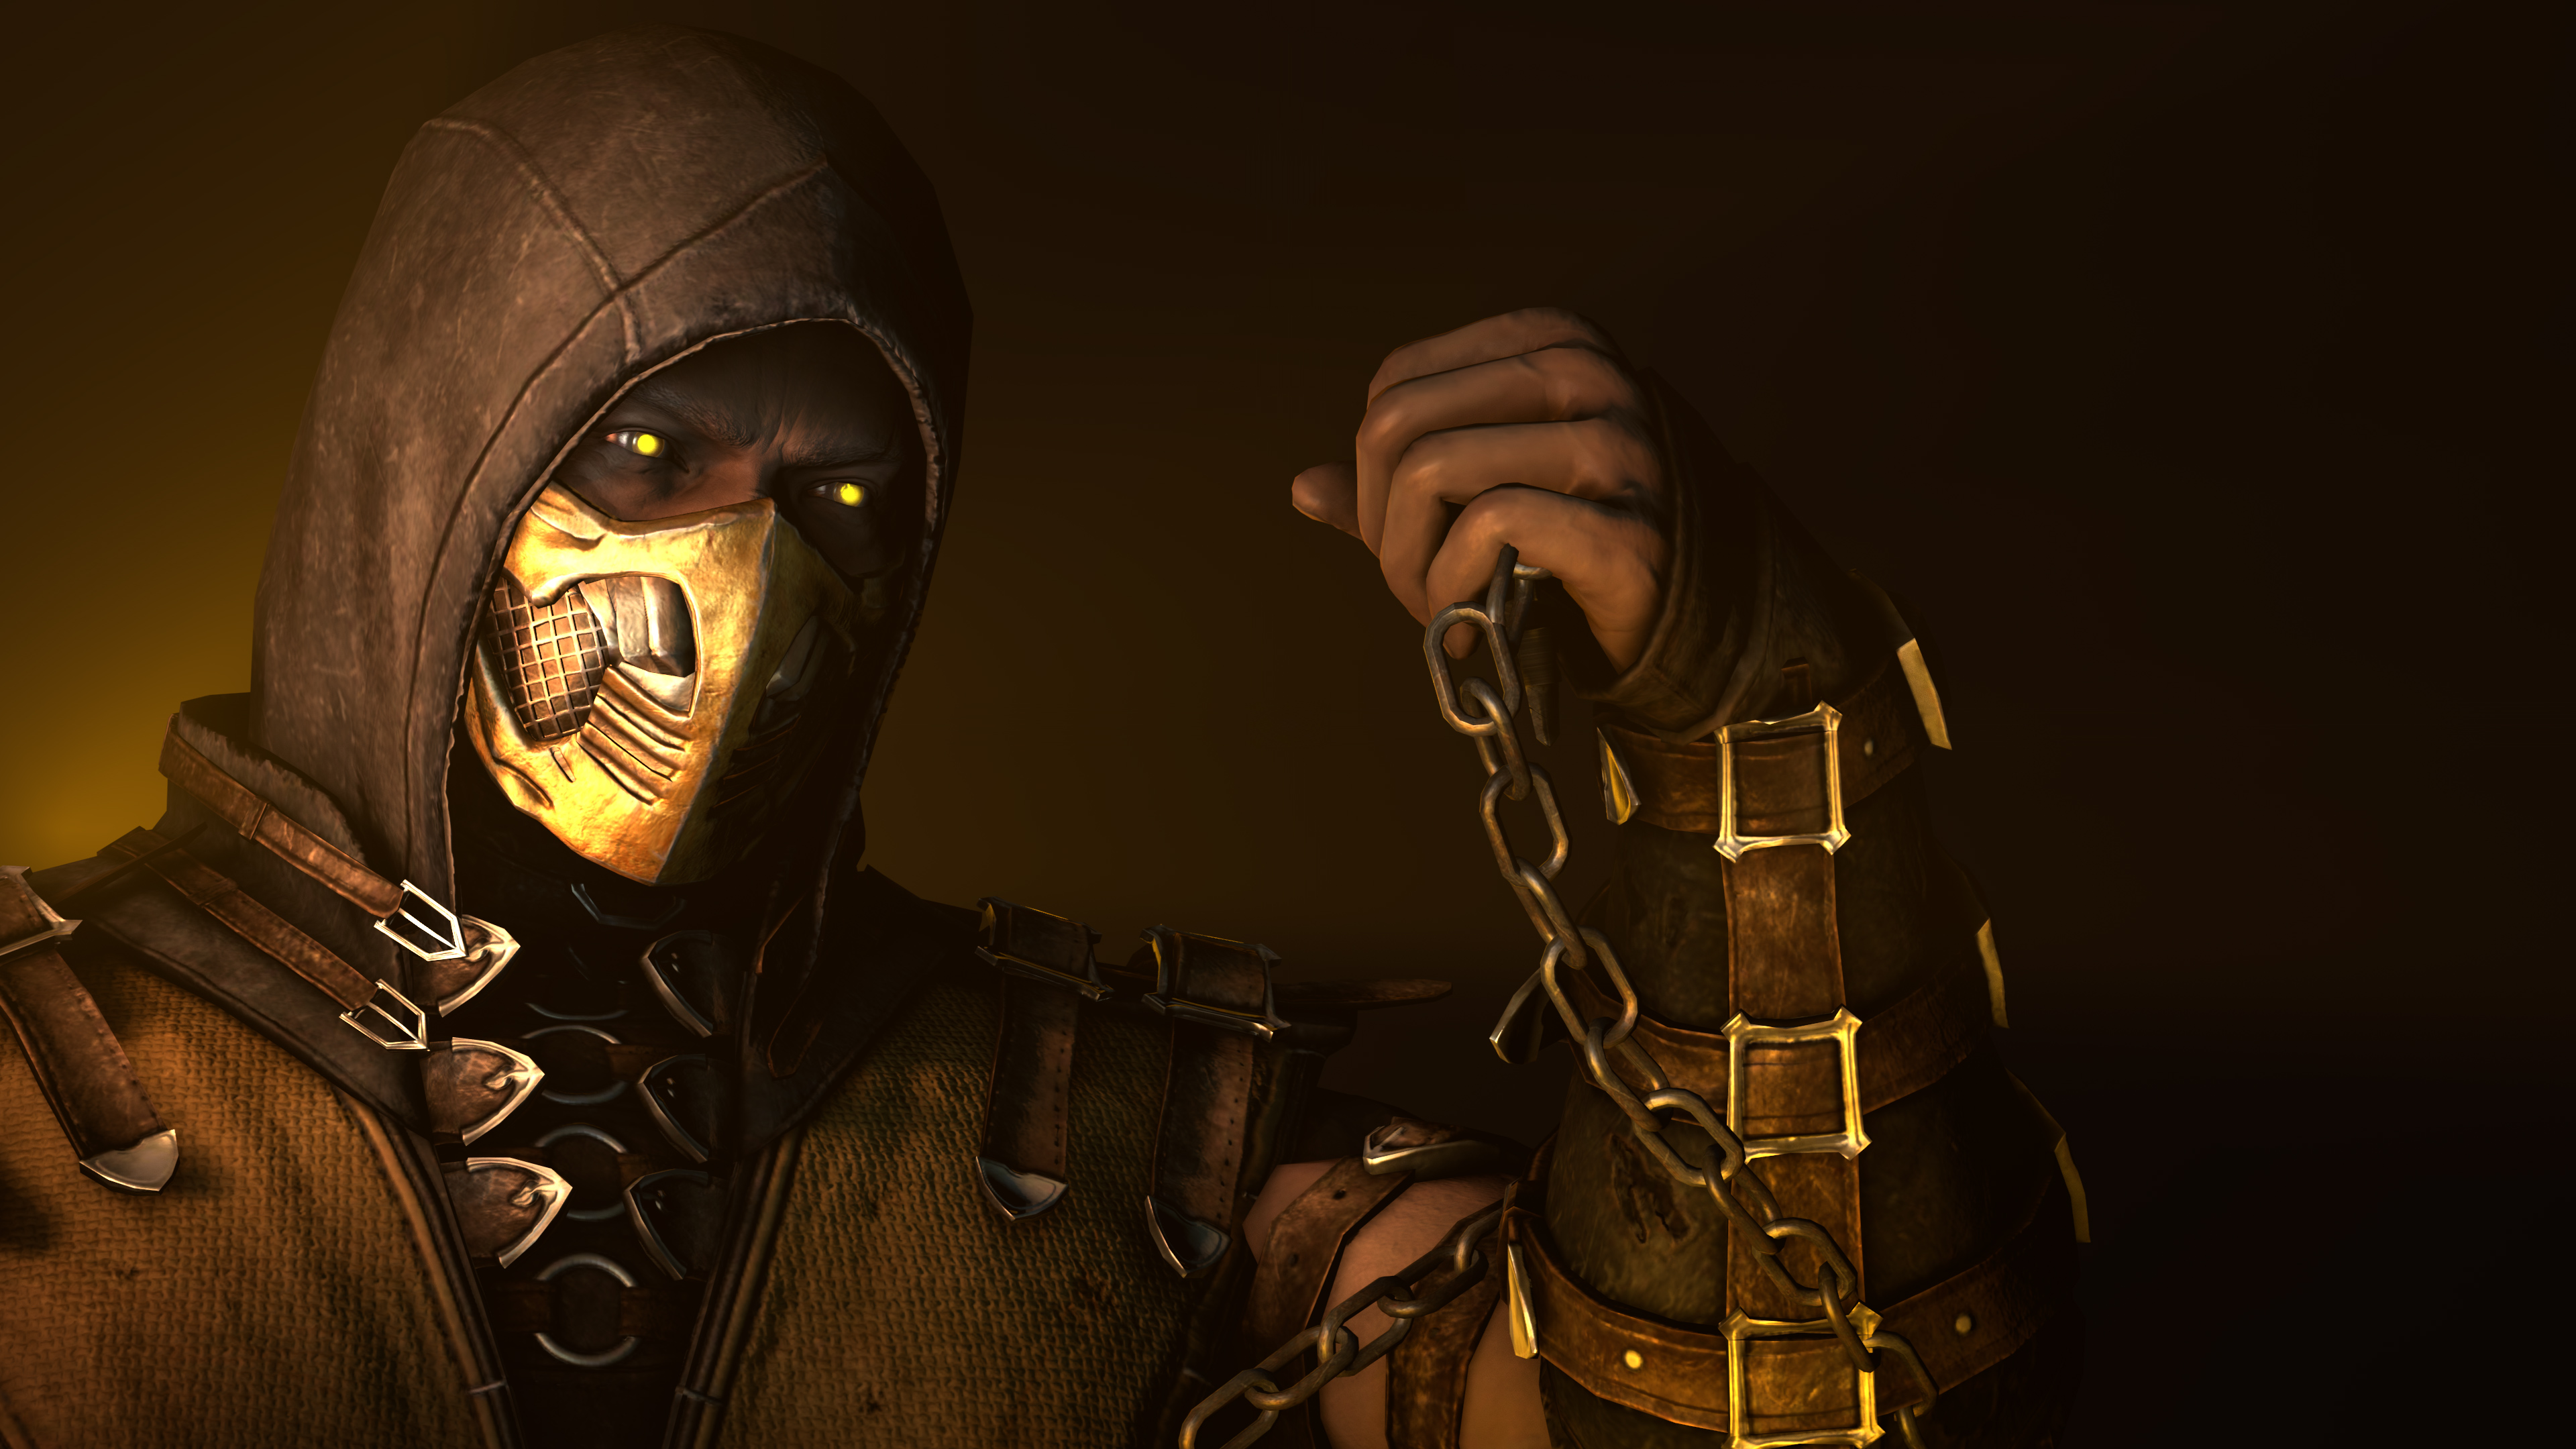 scorpion mortal kombat x poster 4k 1553074996 - Scorpion Mortal Kombat X Poster 4k - xbox games wallpapers, scorpion wallpapers, ps games wallpapers, pc games wallpapers, mortal kombat wallpapers, hd-wallpapers, games wallpapers, deviantart wallpapers, 4k-wallpapers